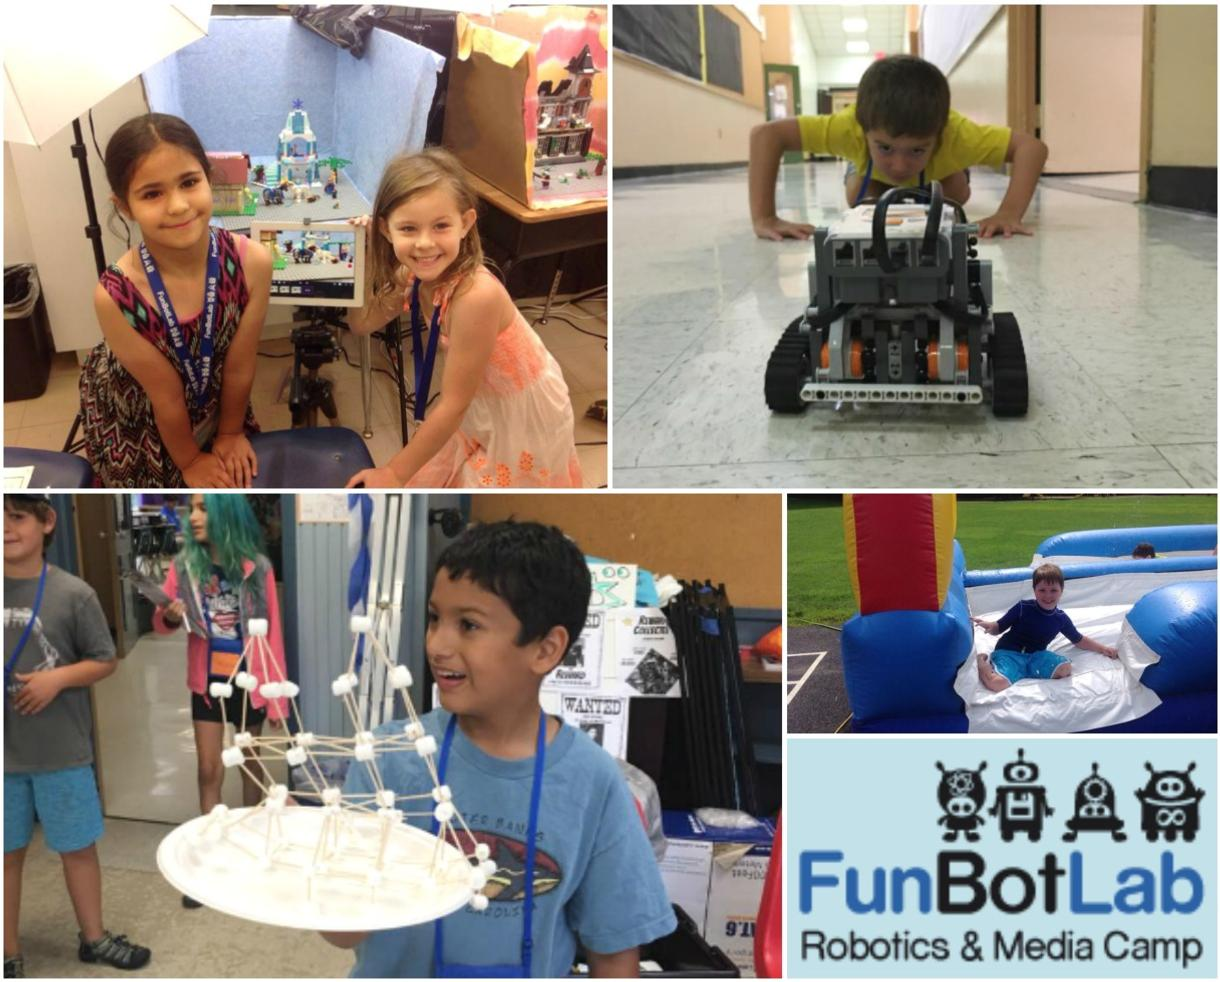 FUN BOT LAB Robotics & Media Camp